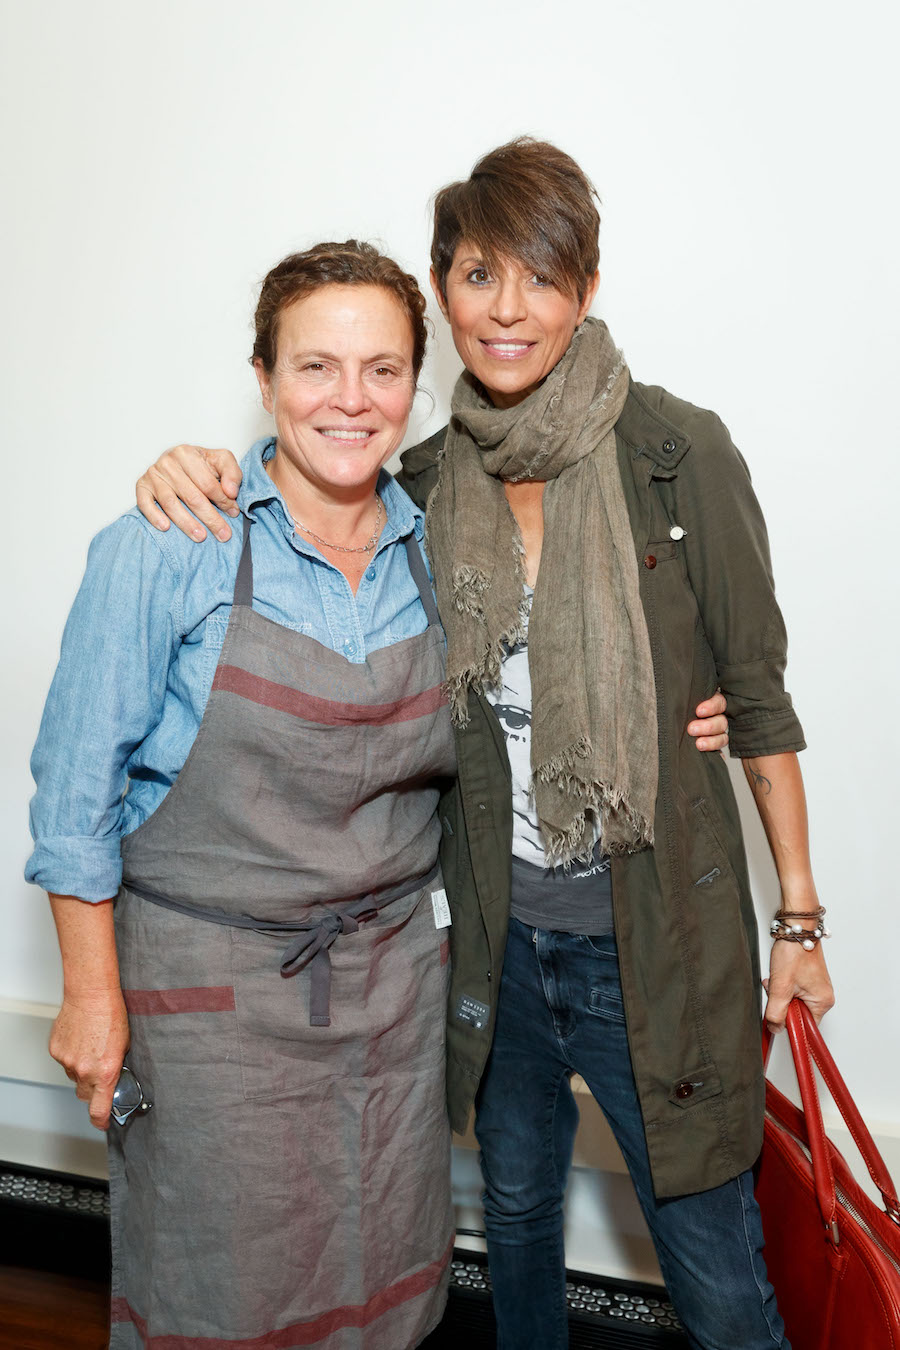 Chef Traci Des Jardins will join Crenn during the dinner series